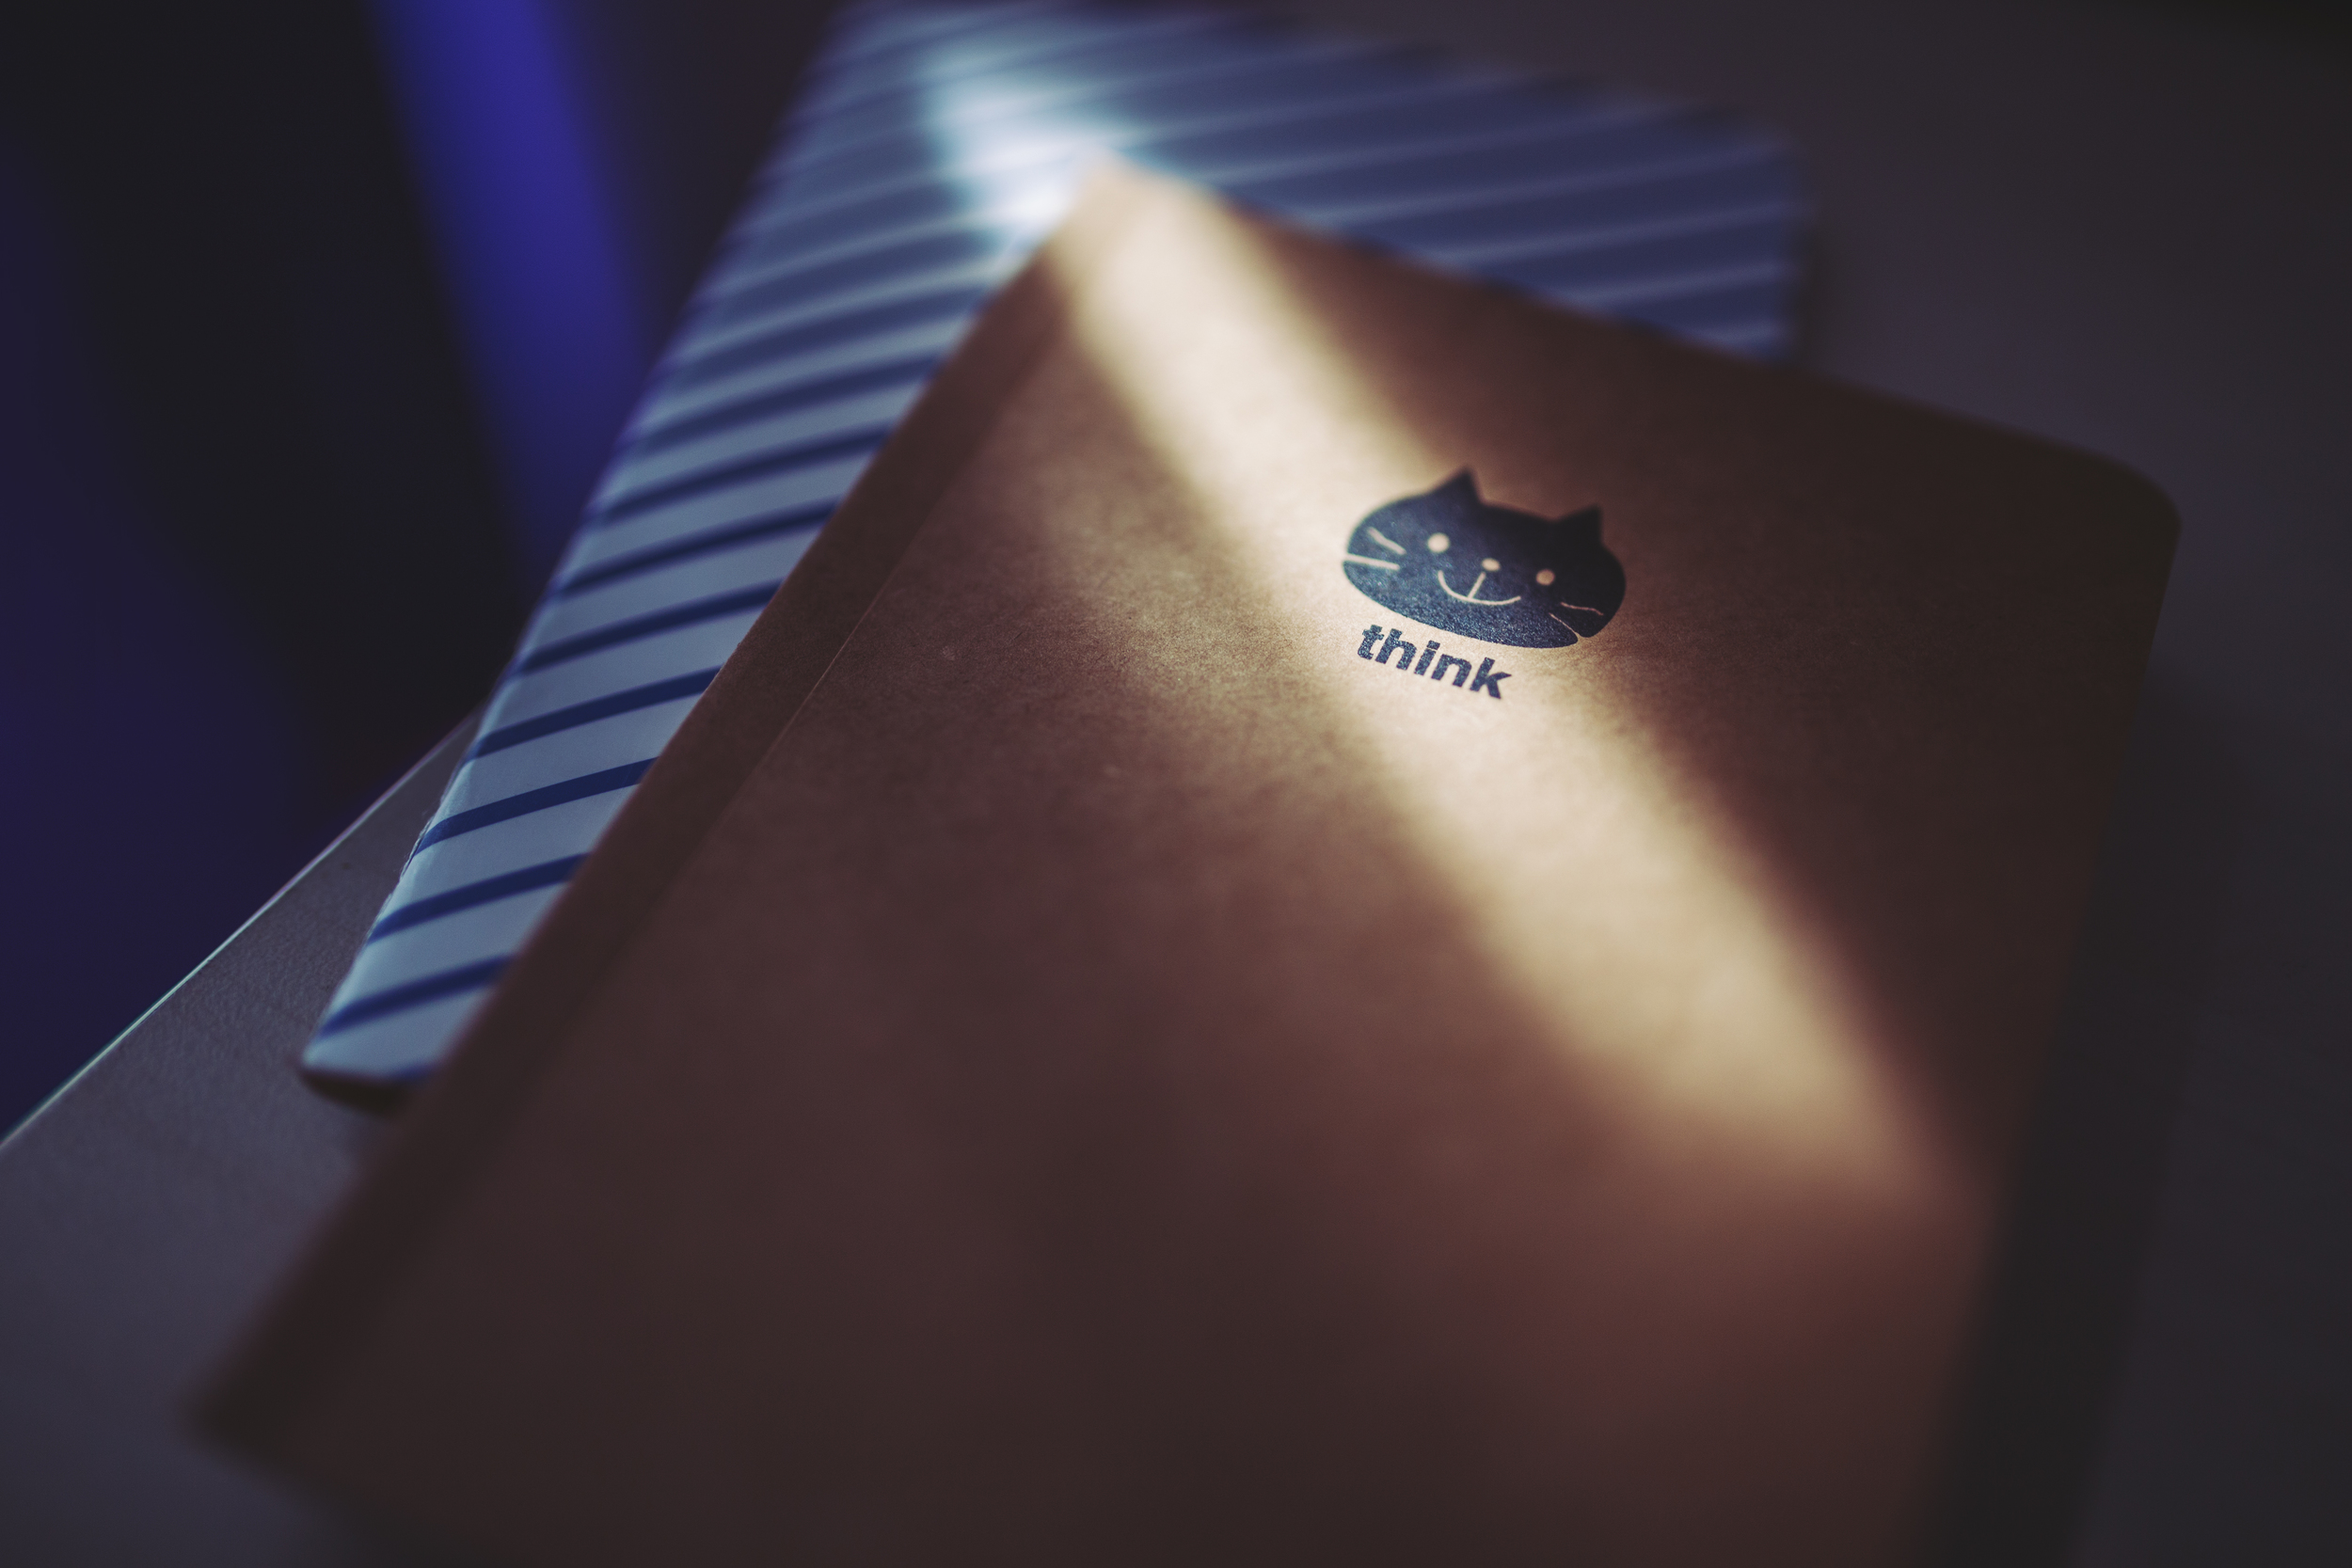 Think- Notebook